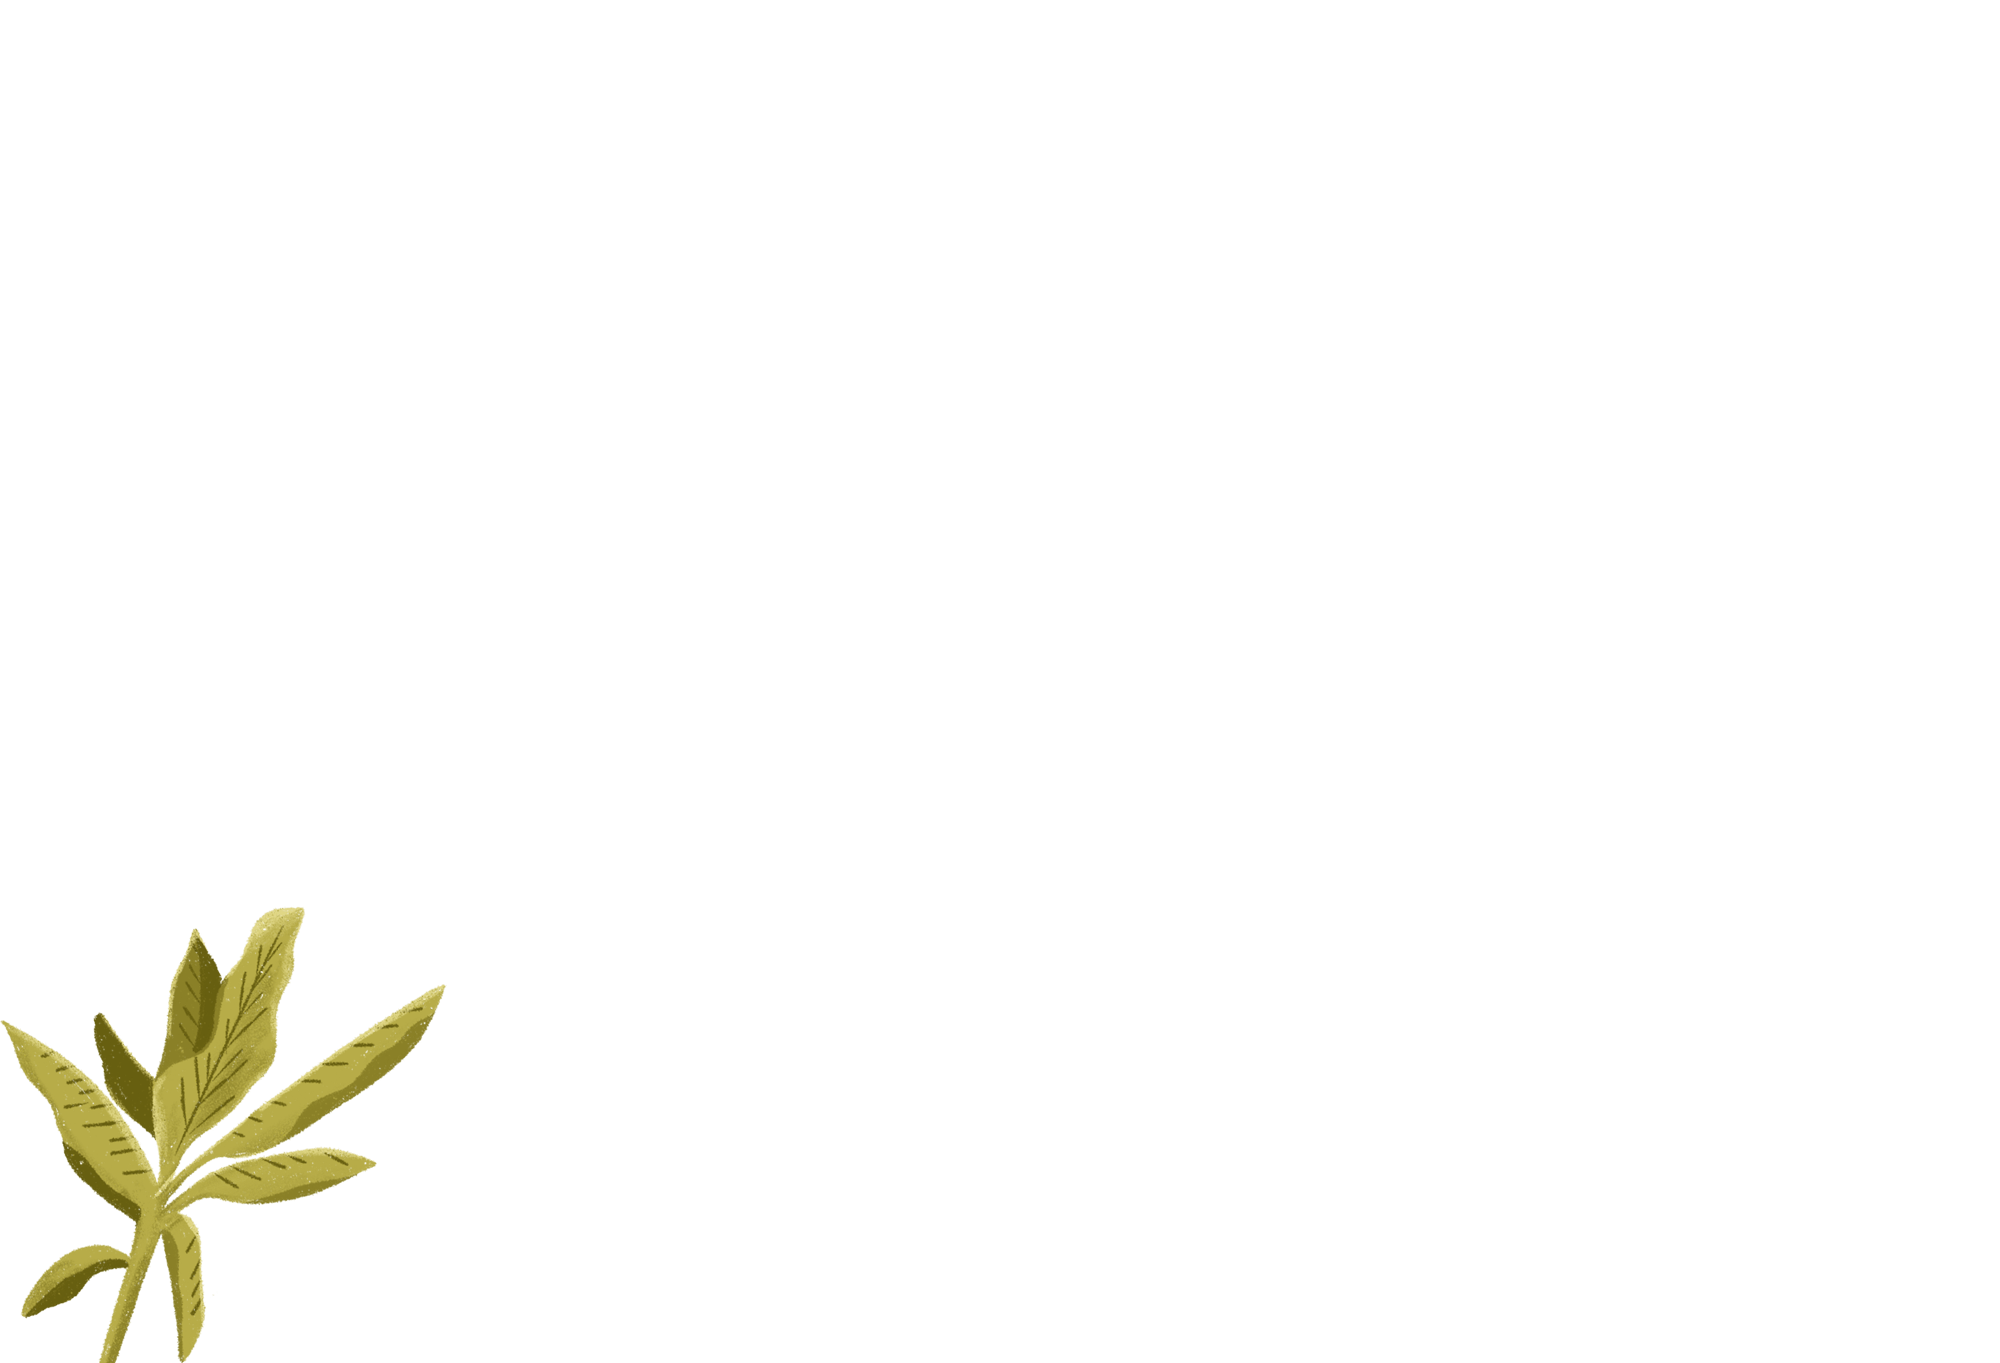 detail-plant-links.png